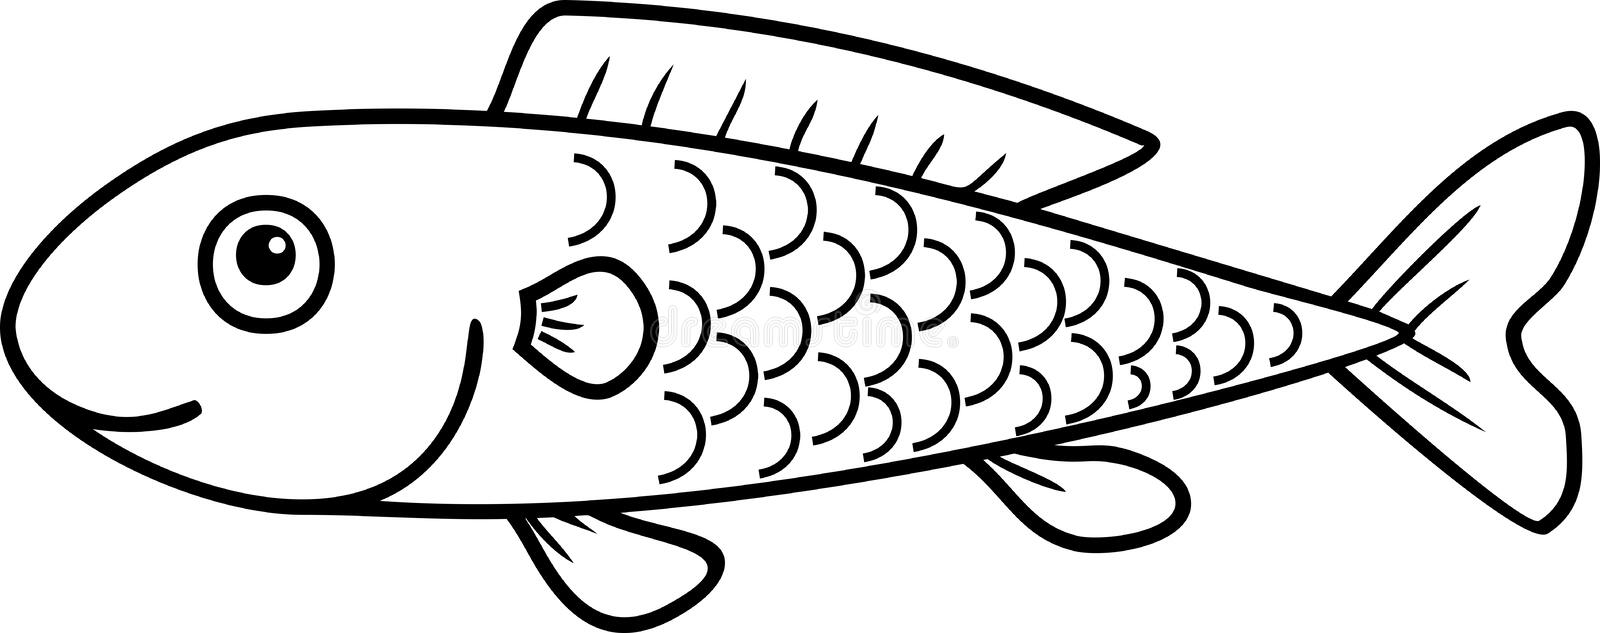 Coloring page with cute cartoon fish stock illustration